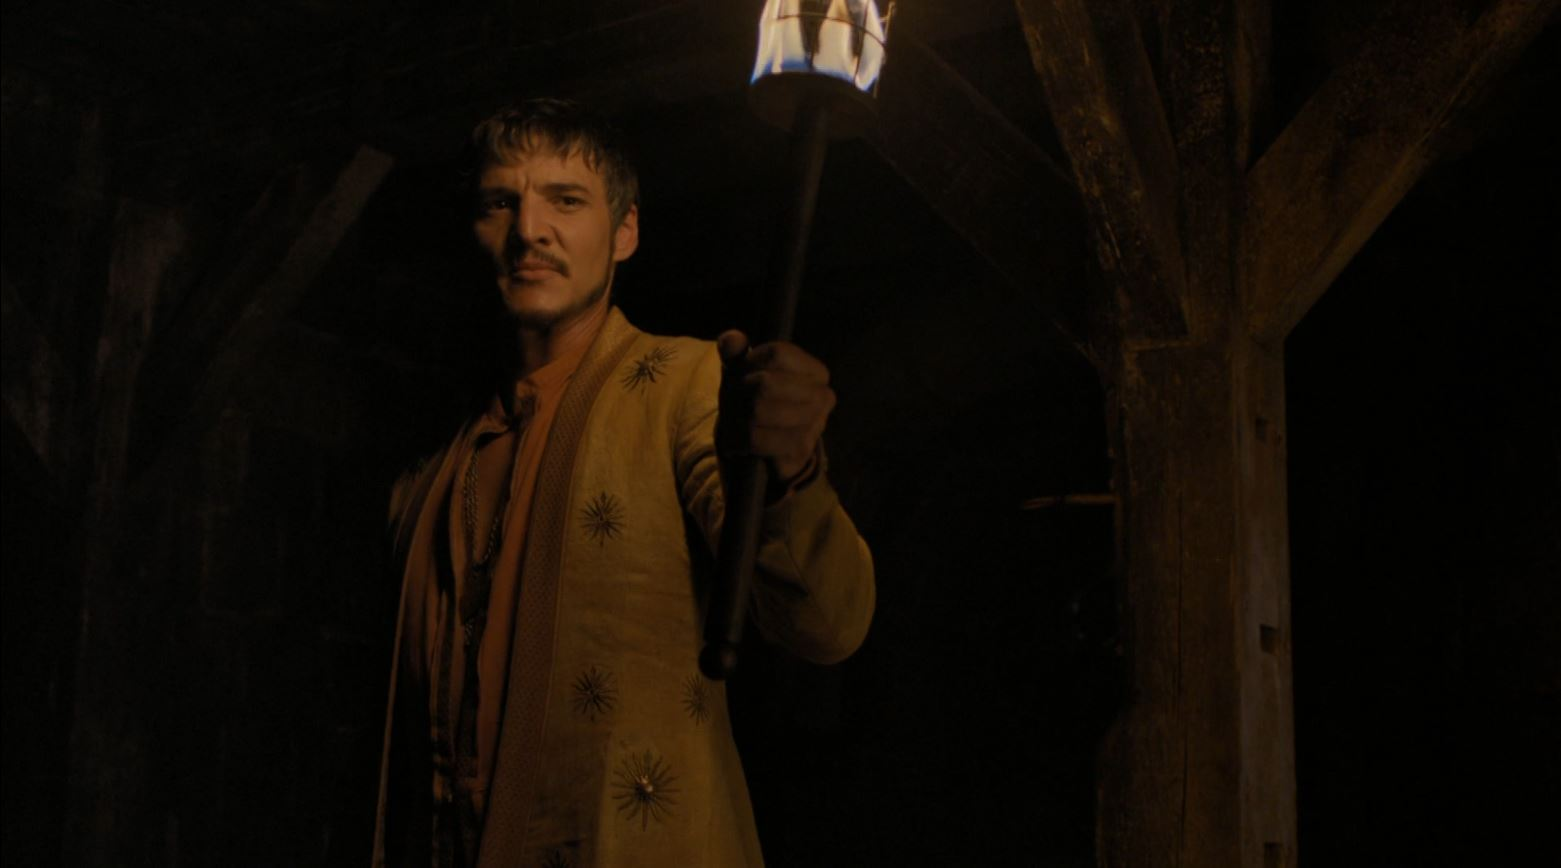 Game Of Thrones S4Ep7 Mockingbird Review - Pedro Pascal as Oberyn Martell offers to be the Champion